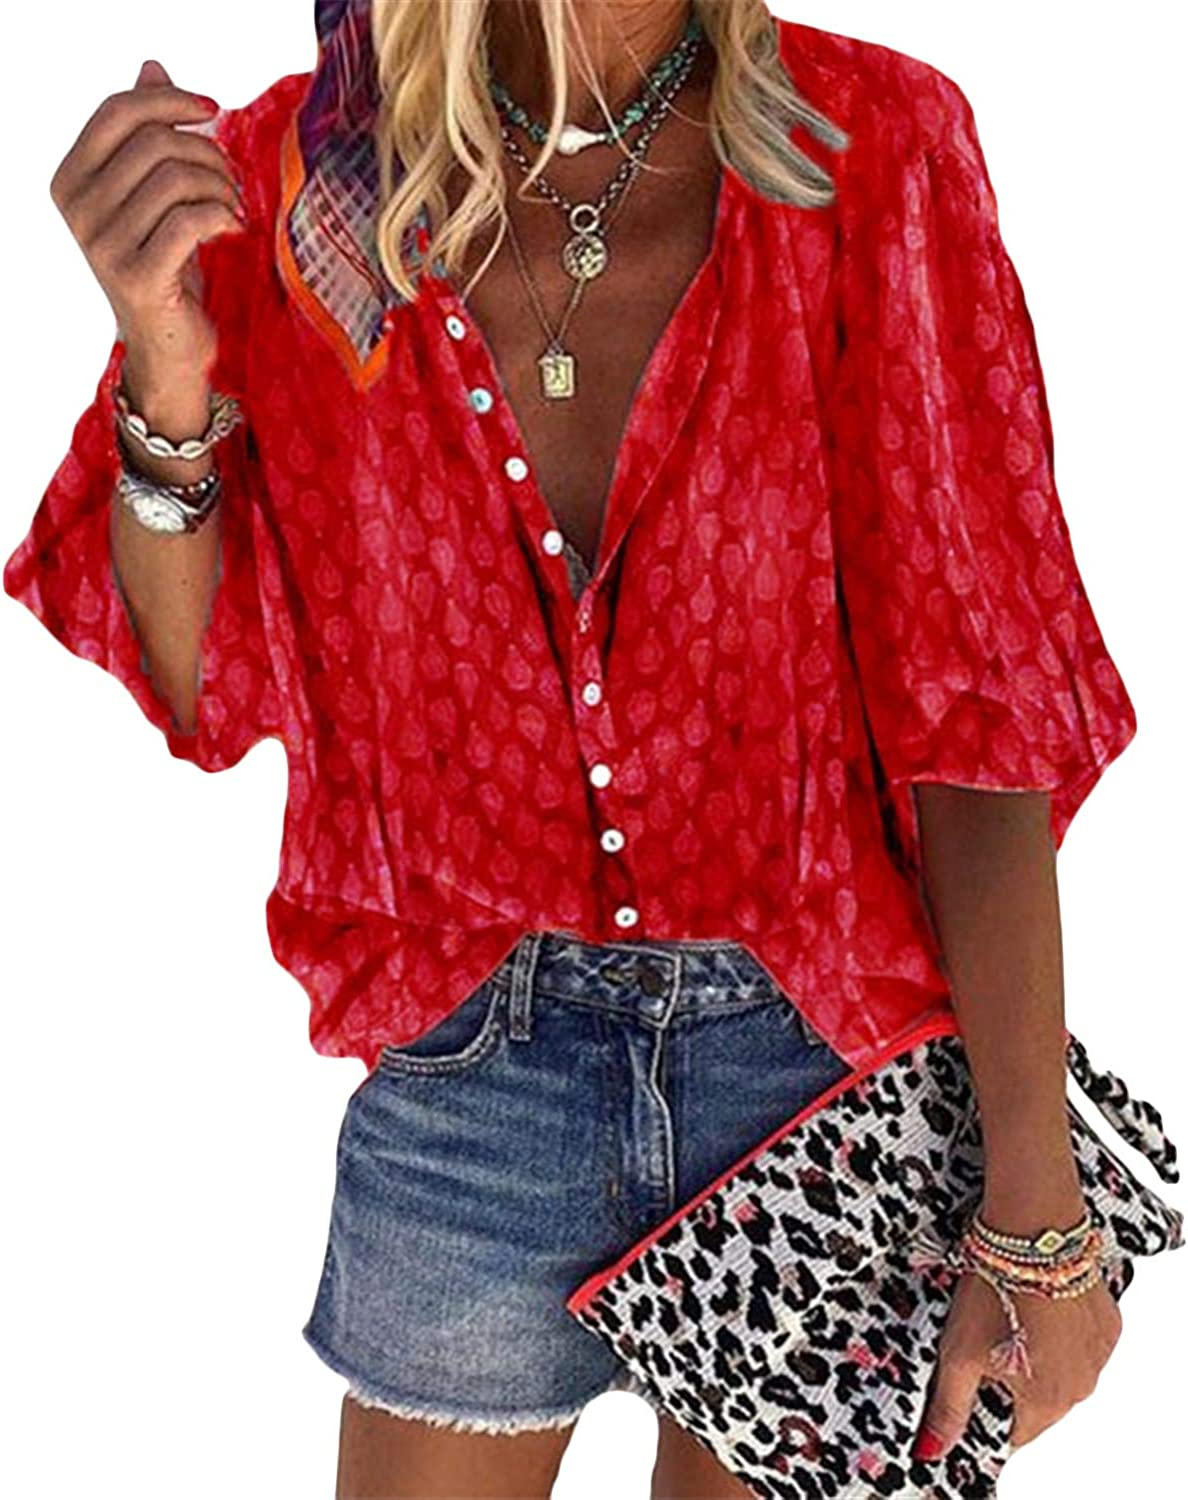 Andongnywell Women's Chiffon Blouses Button Down Shirts V Neck Classic Tops and Tees